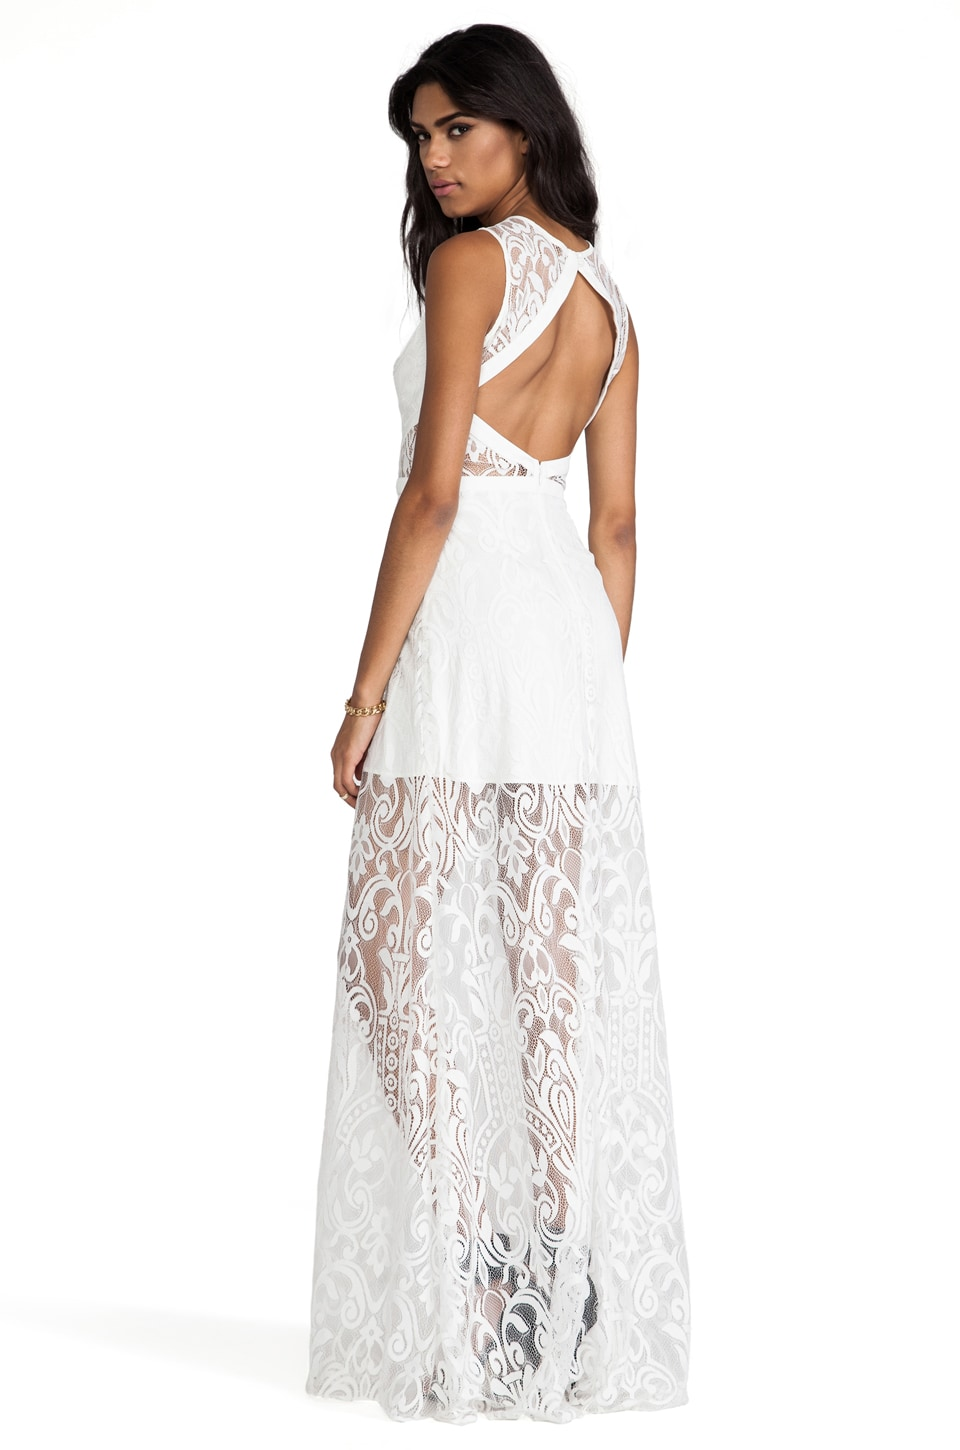 Alexis Everly Lace Open Back Dress in White Lace